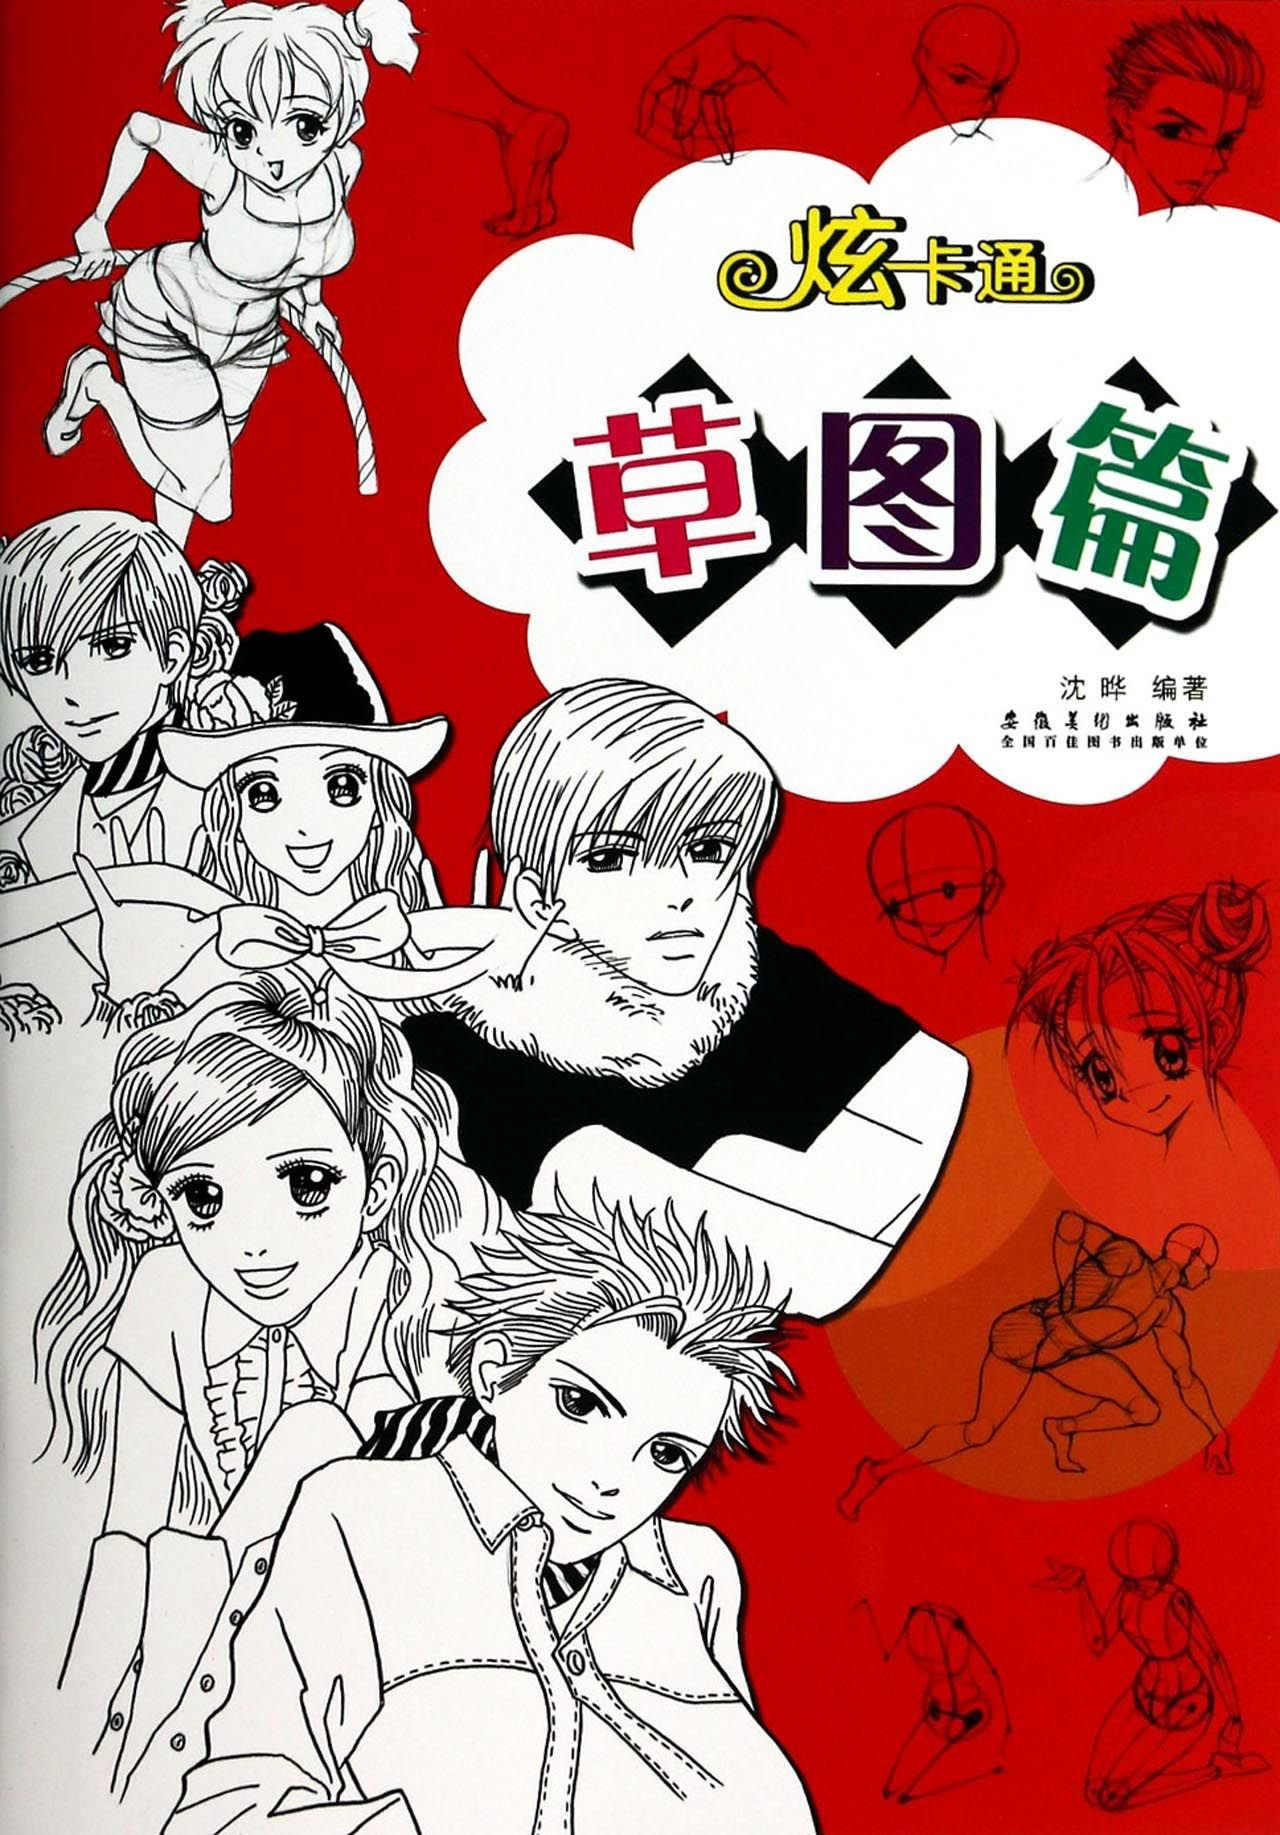 Read Online Hyun Anime sketch papers(Chinese Edition) ebook